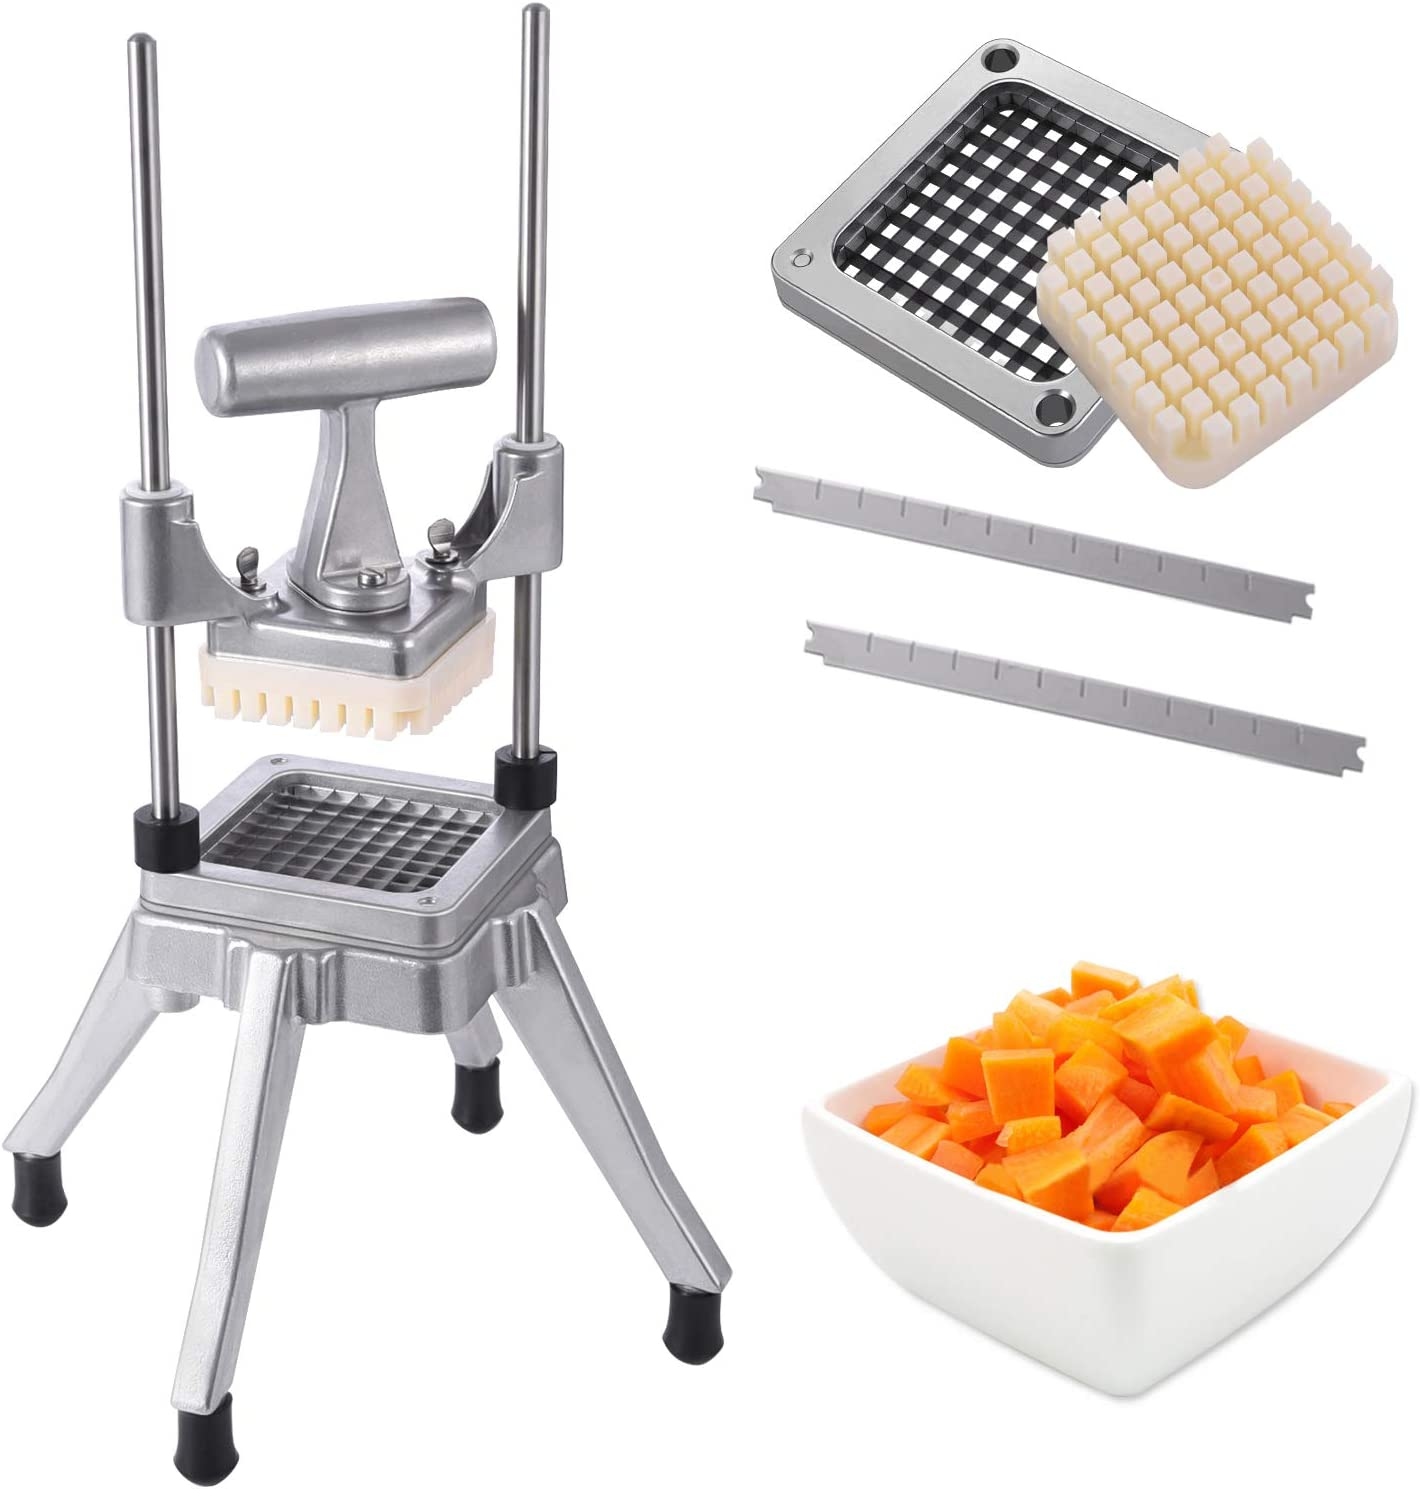 Frifer Commercial Vegetable Fruit Chopper French Fry Cutter 1/4″ Blade Heavy Duty Professional Food Dicer Stainless Steel Potato Chopper for Onion Peppers Potatoes Mushrooms,(Silver)